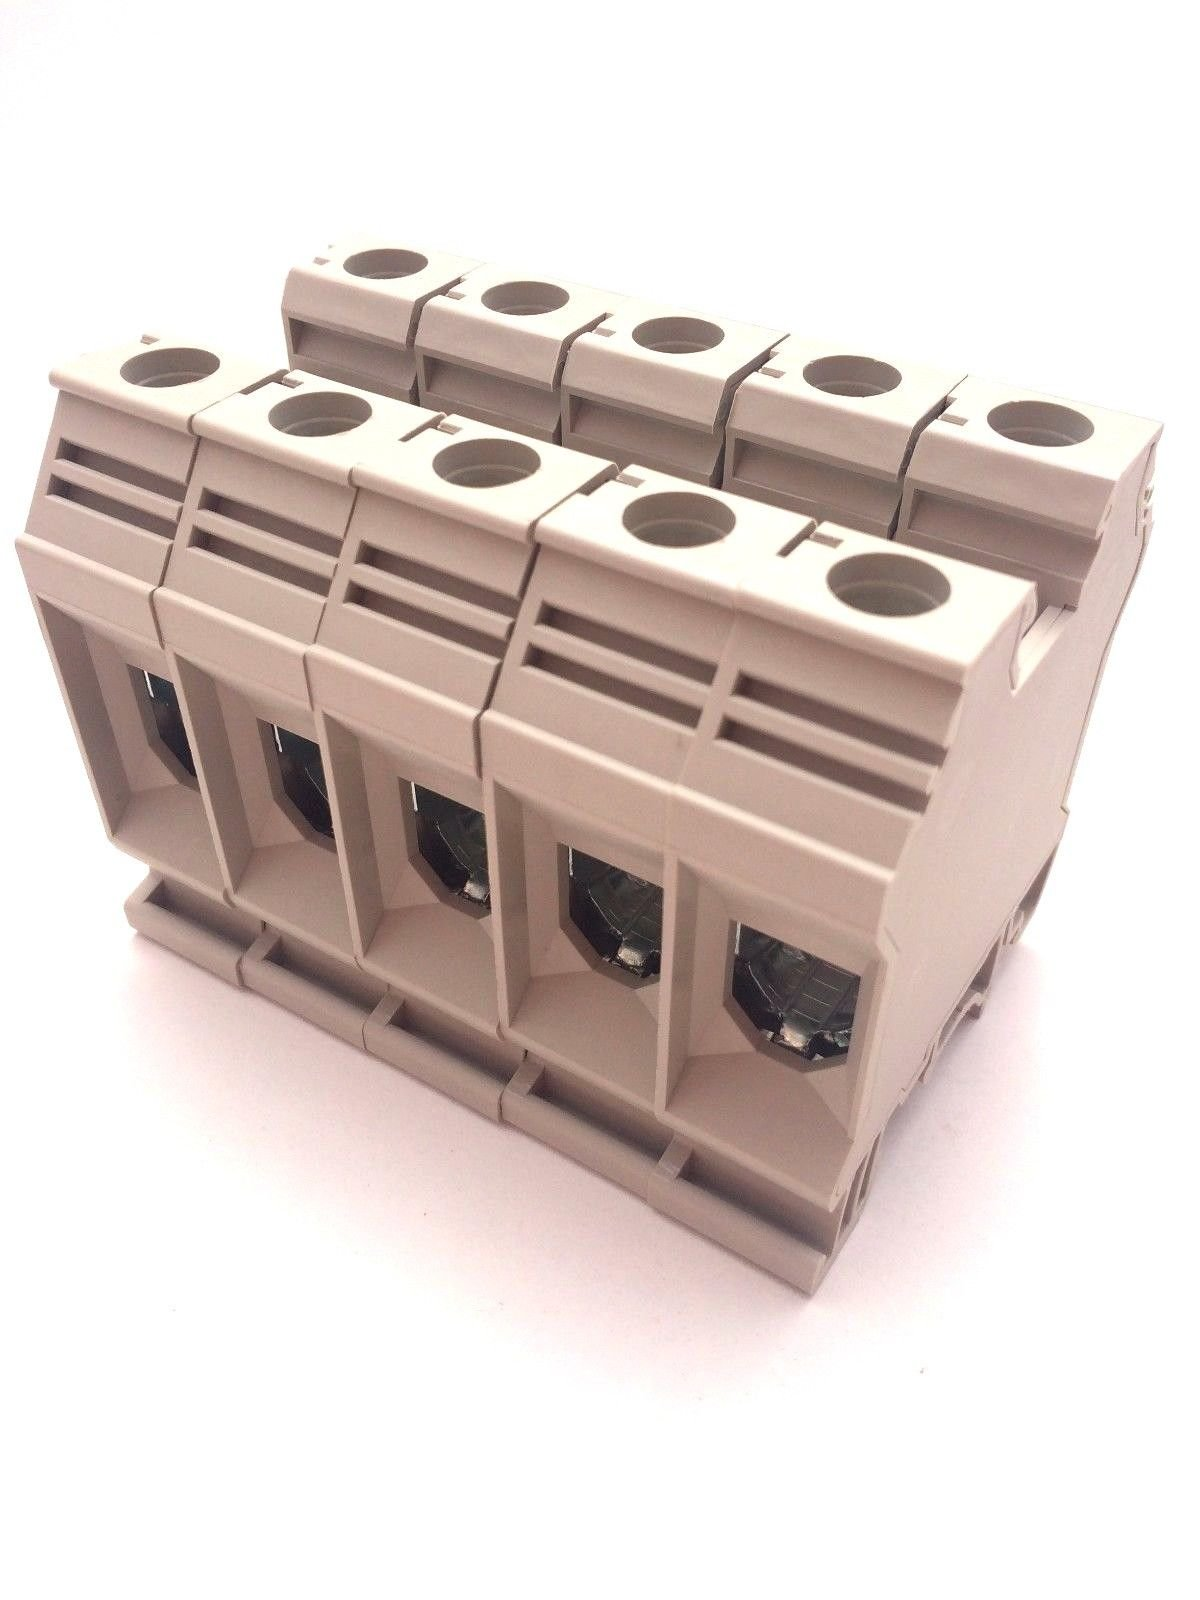 Dinkle DK35N DIN Rail Terminal Block Screw Type UL 600V 150A 1/0-12AWG, Pack of 50